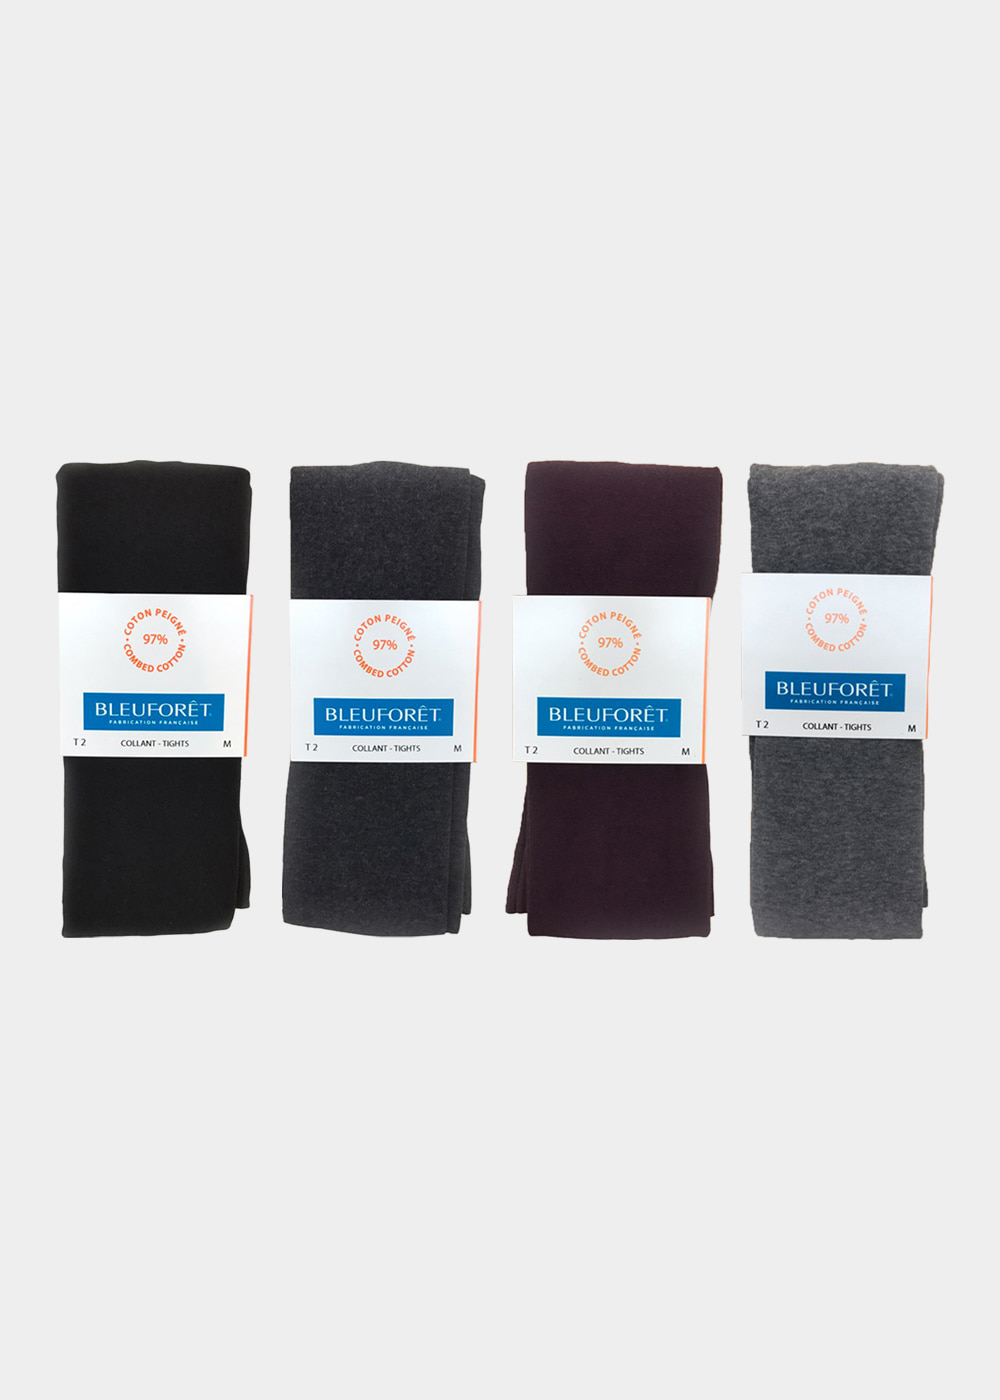 COTTON TIGHTS - black, plum, light grey, charcoal grey